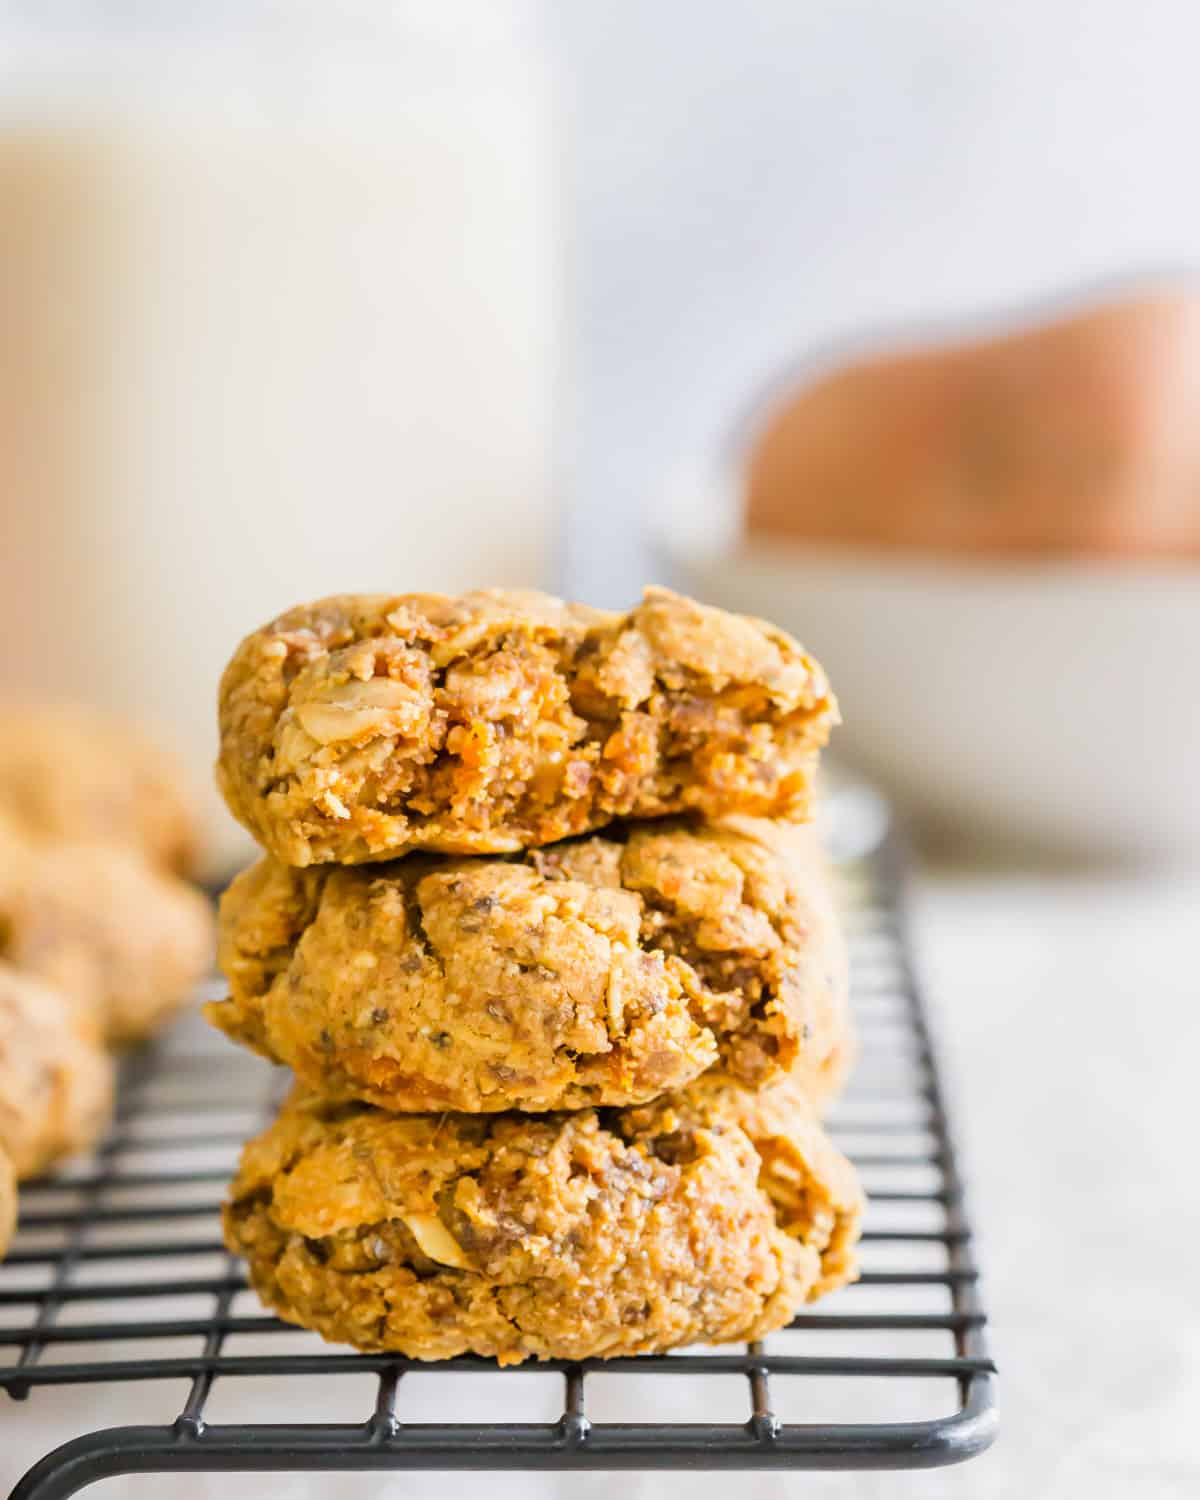 This easy sweet potato cookie recipe is made with mashed sweet potato, oats and almond flour. They're soft, chewy, filled with fall spices, just slightly sweet and naturally gluten-free and vegan!